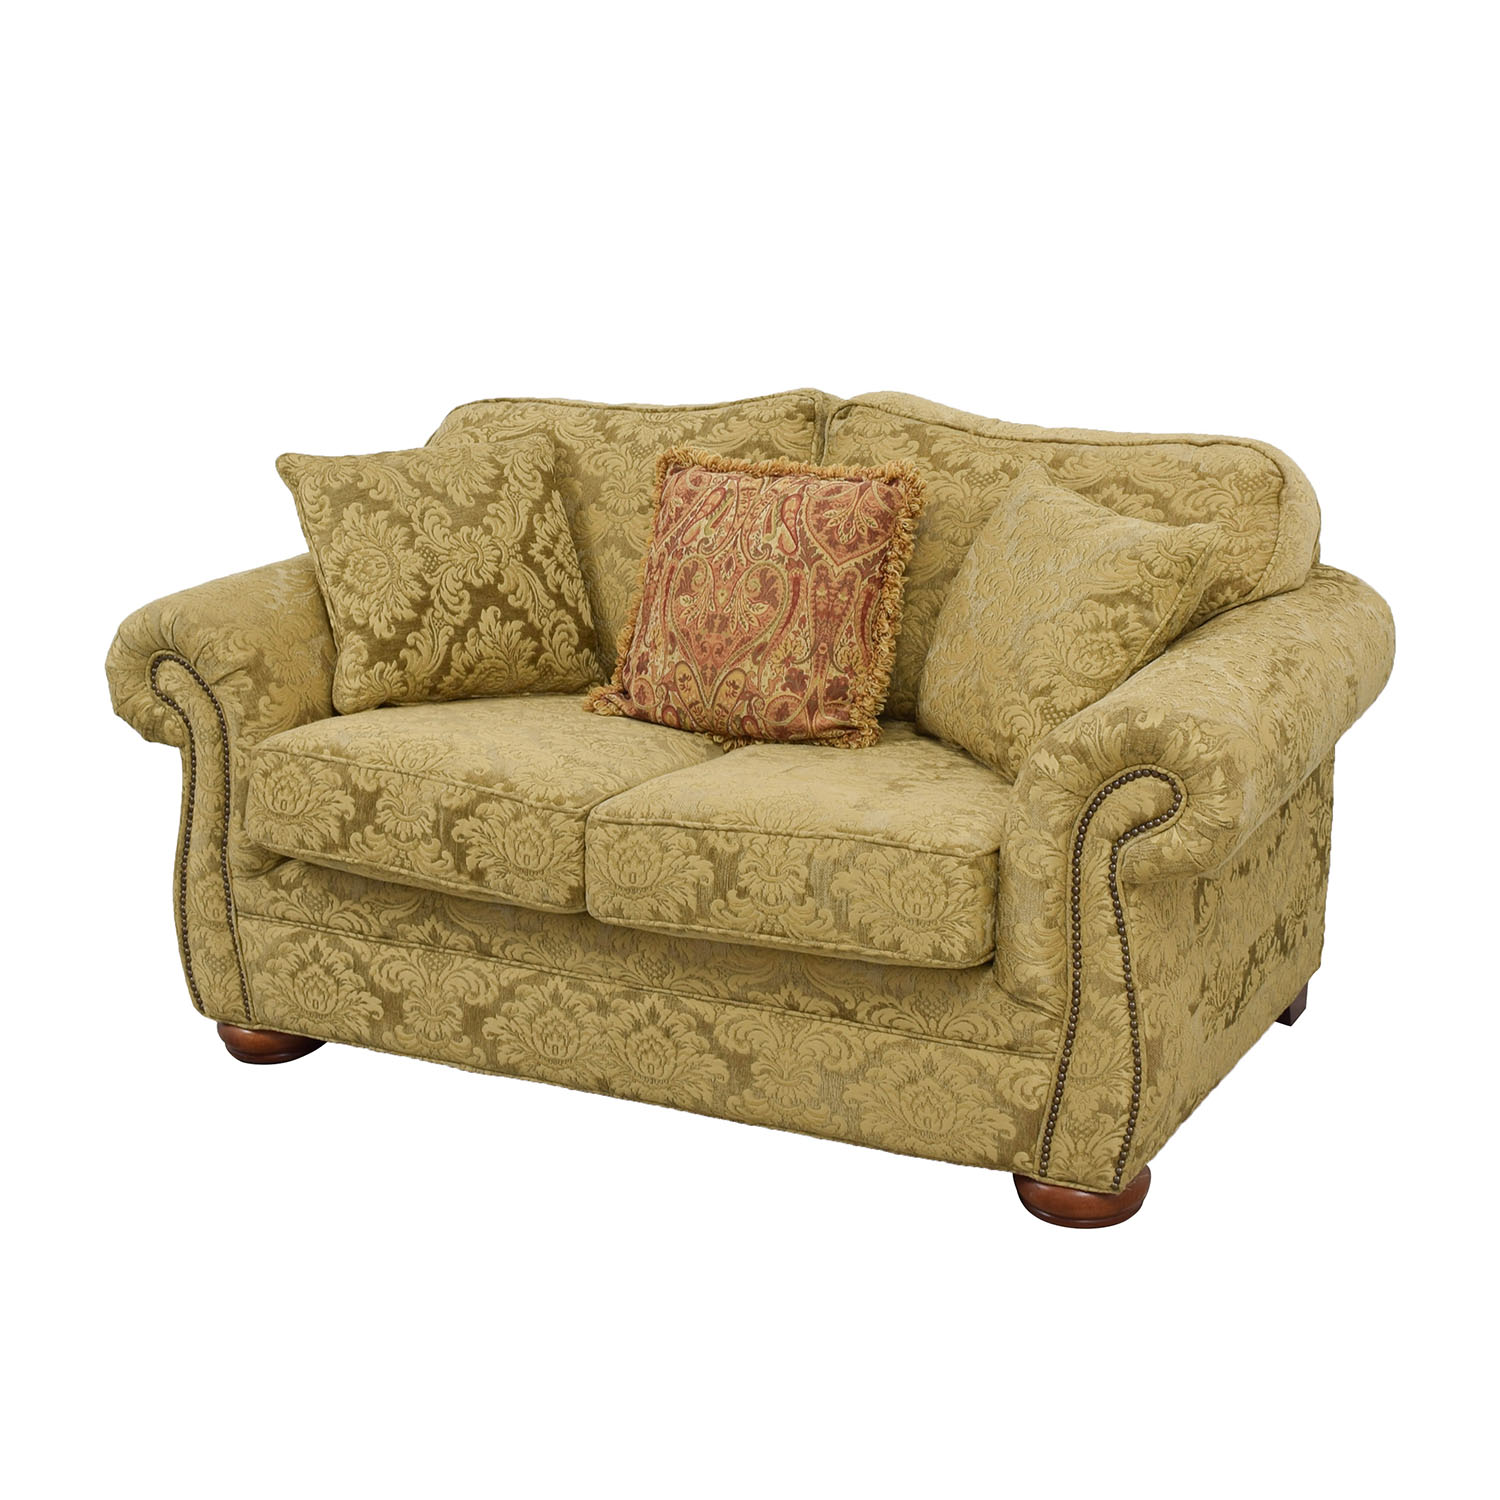 gold sofa throw pillows small queen size sleeper 84 off upholstered loveseat with toss sofas